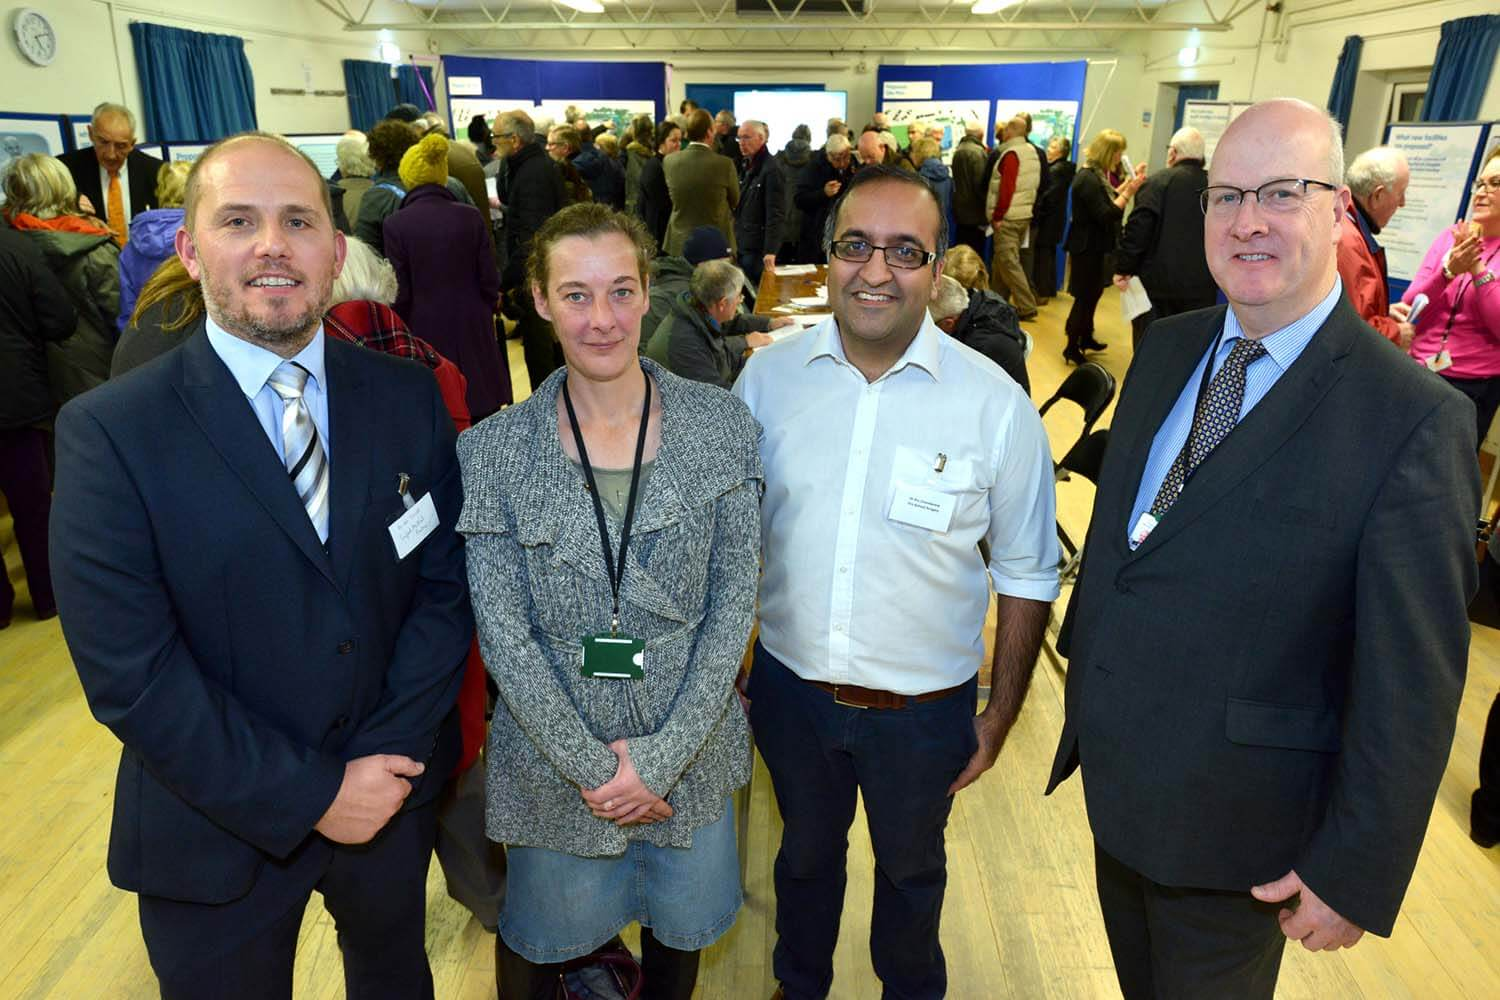 Left to right: Dr Dan Elliot, Seaford Medical Practice; Cllr Liz Boorman, Lewes District Council; Dr Raj Chandarana, Old School Surgery; Cllr Andy Smith, Leader, Lewes District Council